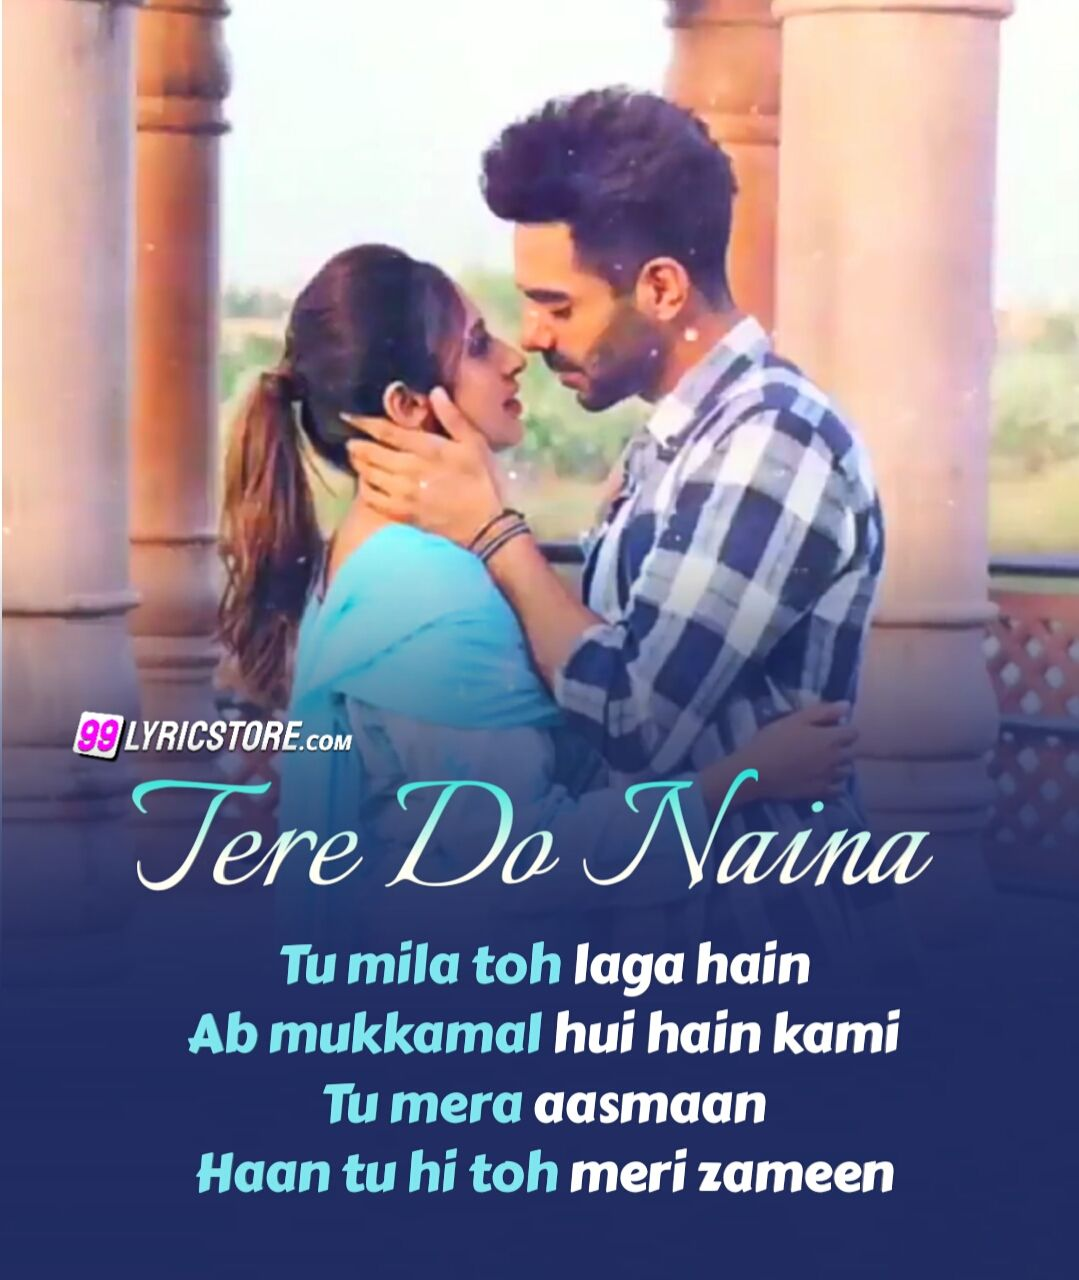 Tere Do Naina Hindi Song Lyrics Featuring Aparshakti Khurrana and Akanksha Ranjan song sung by Ankit Tiwari